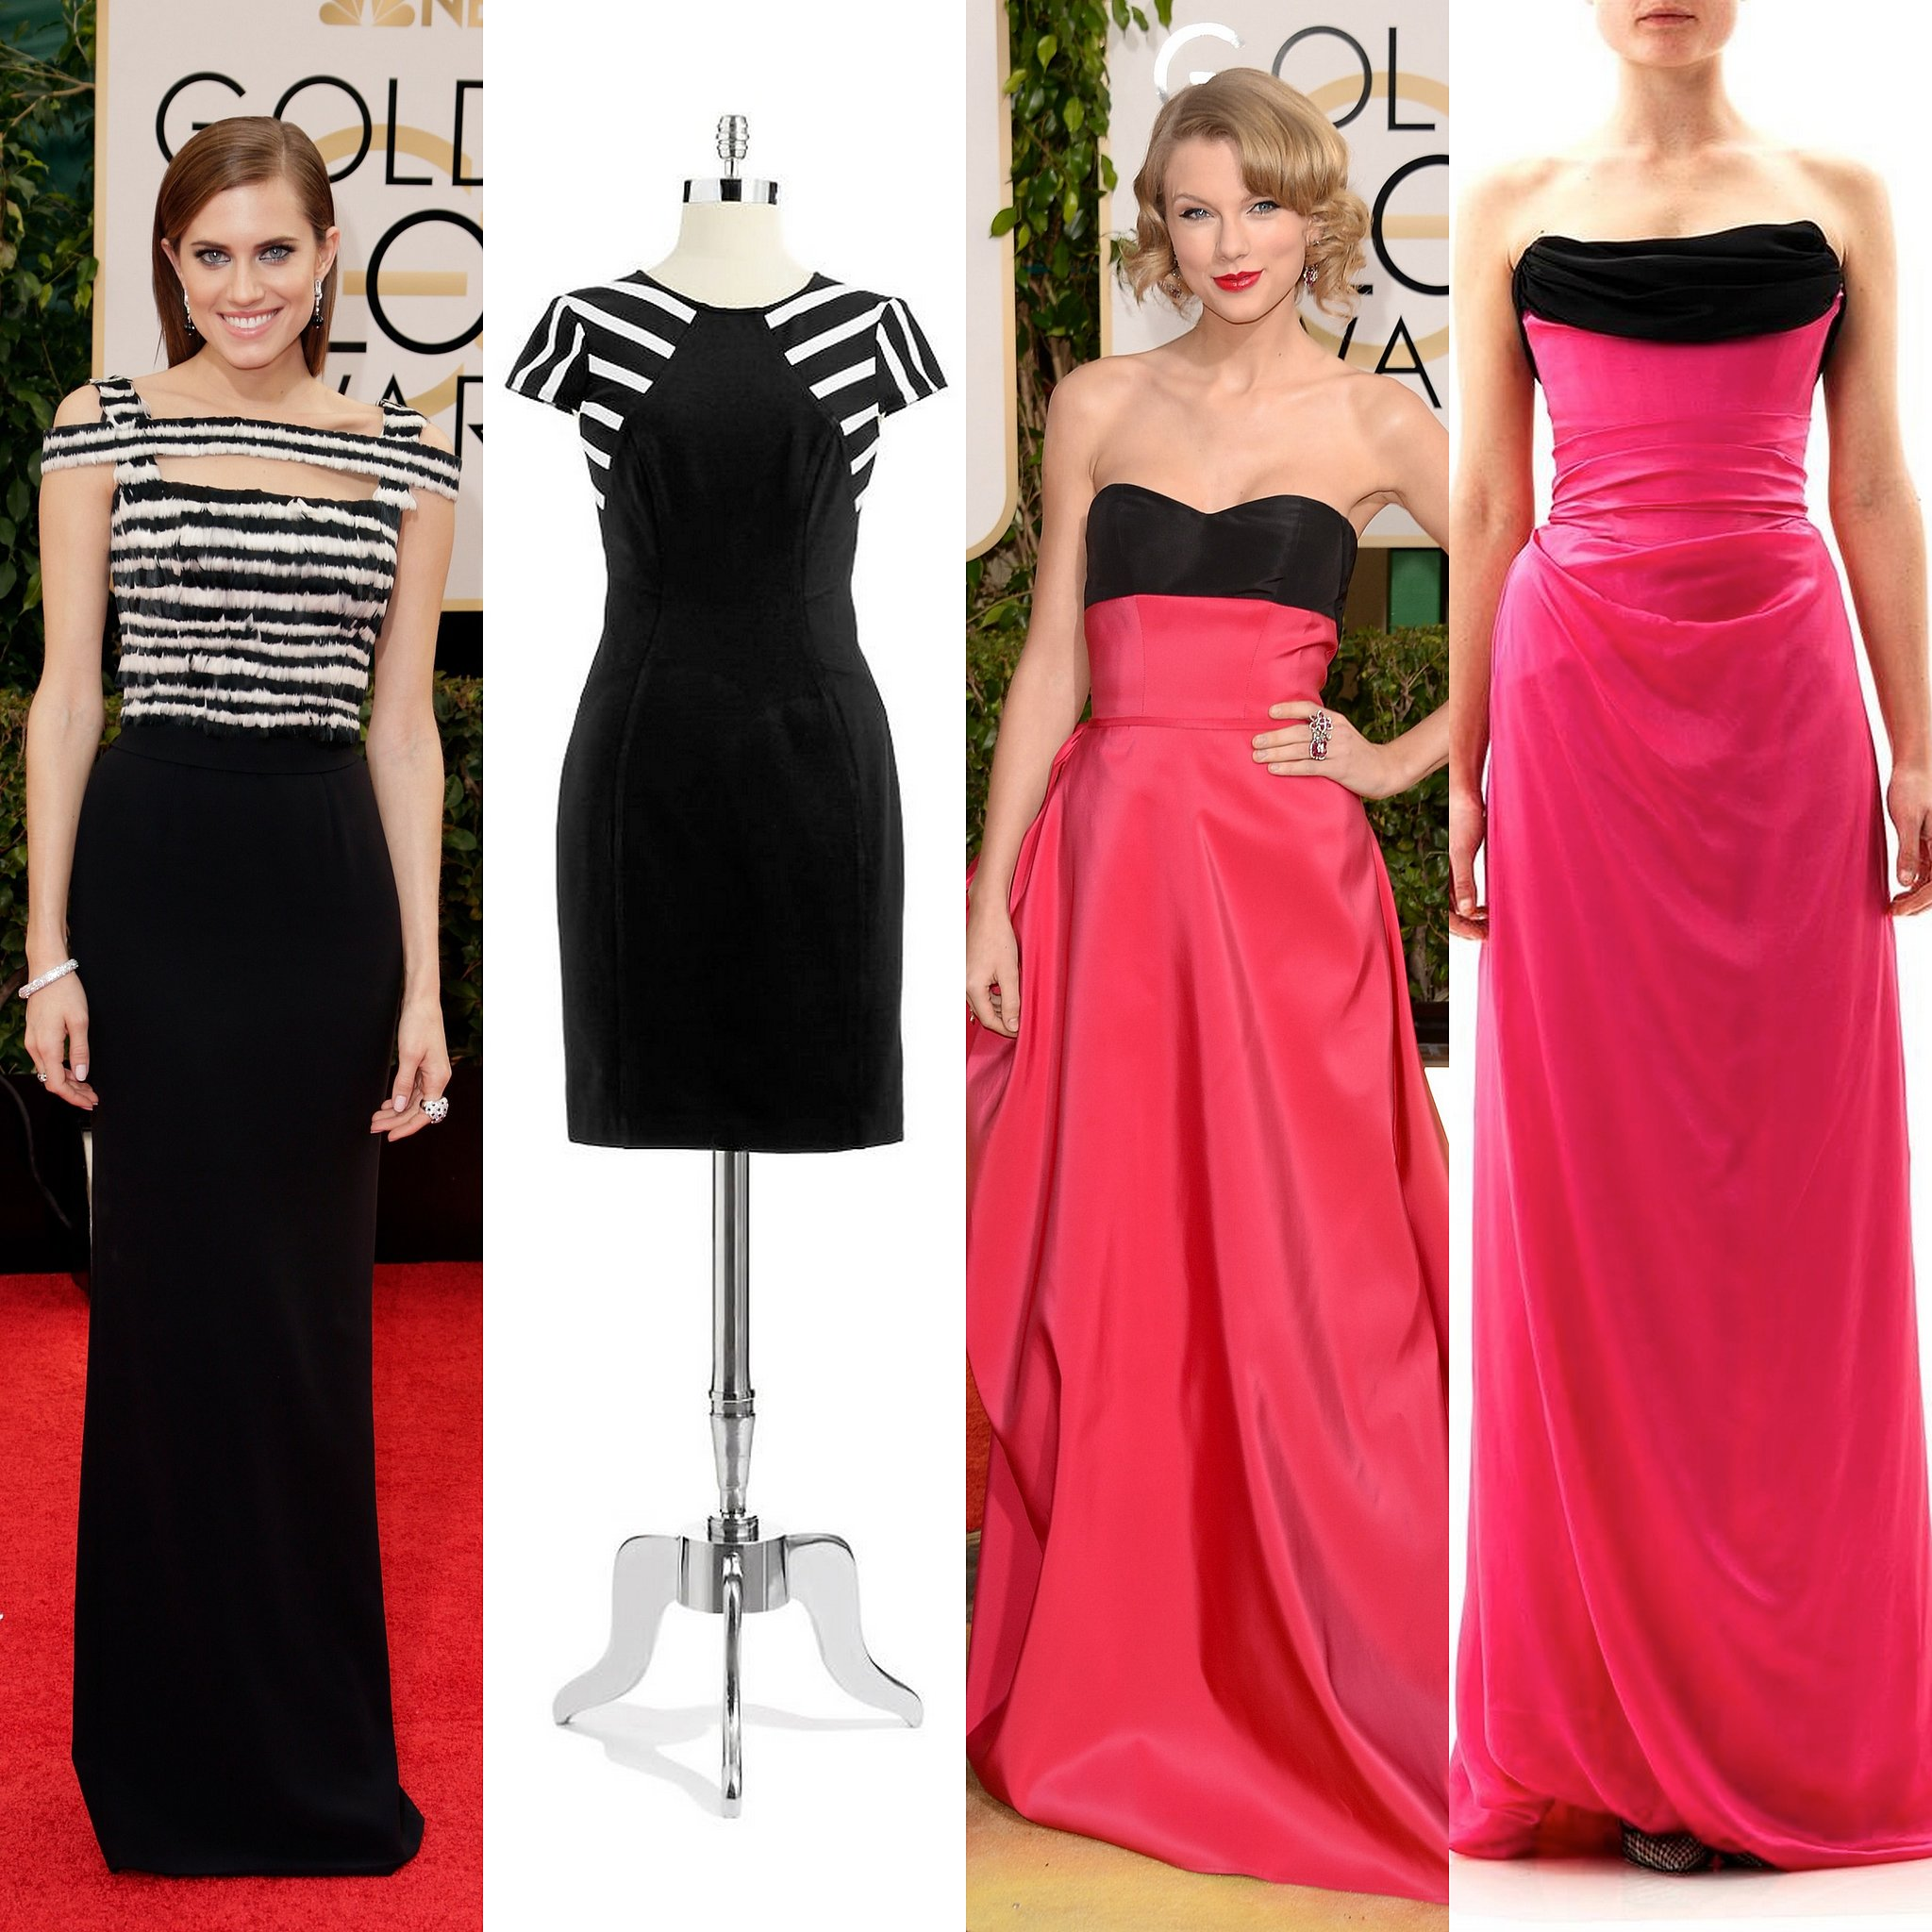 Allison Williams' stripe topped gown is very playful, while Taylor Swift's pink and black voluminous gown looks old-school cool.